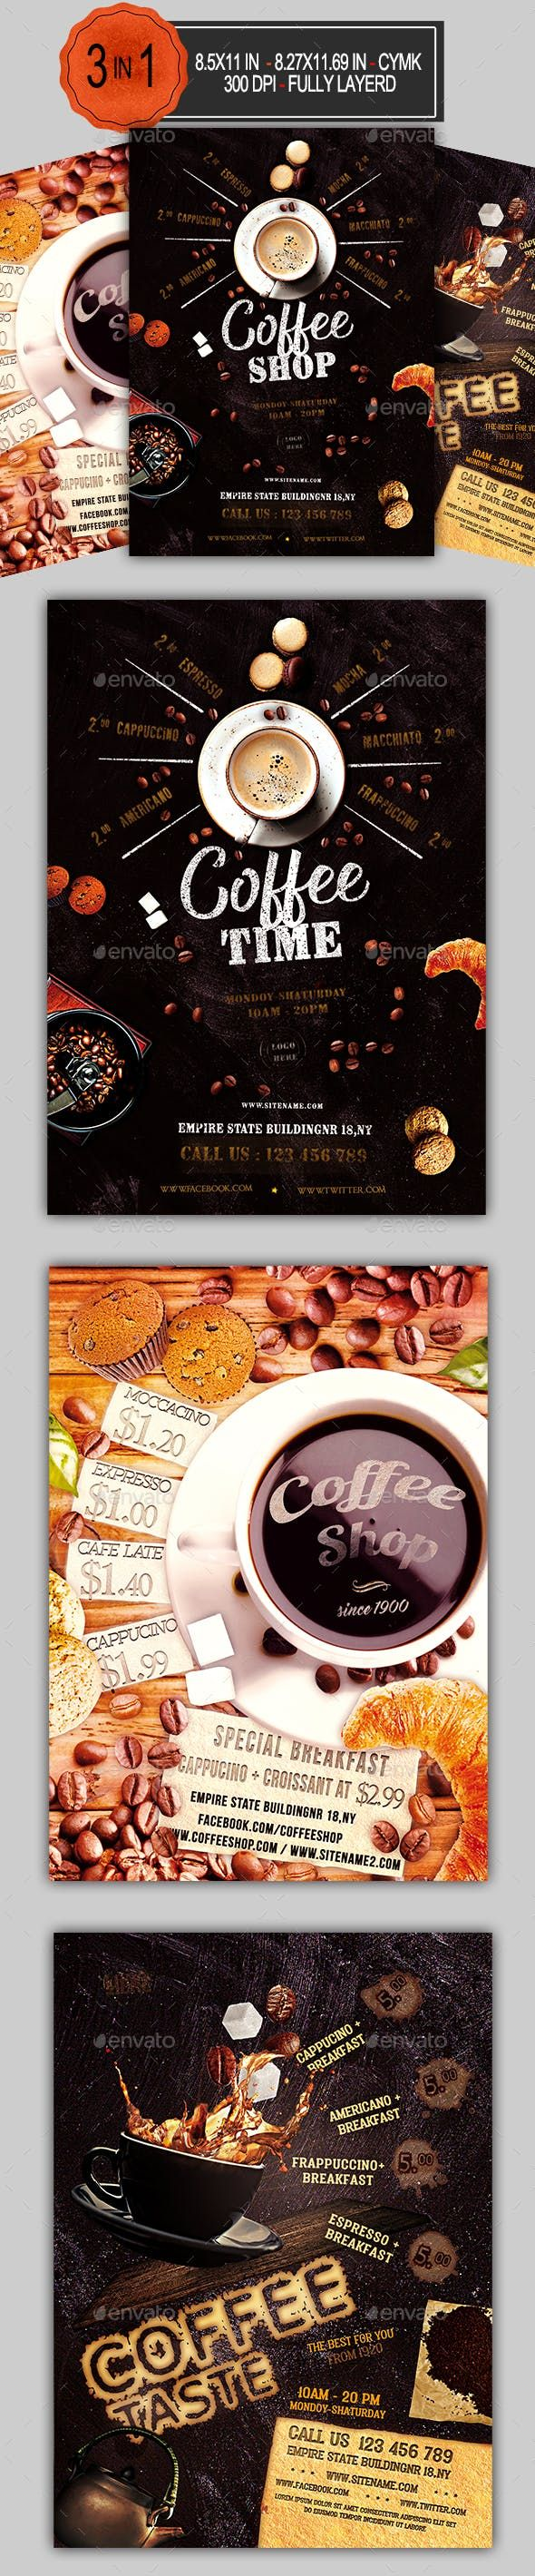 Mouth-Watering Restaurant Menu Designs | EntheosWeb |New Coffee Shop Flyer